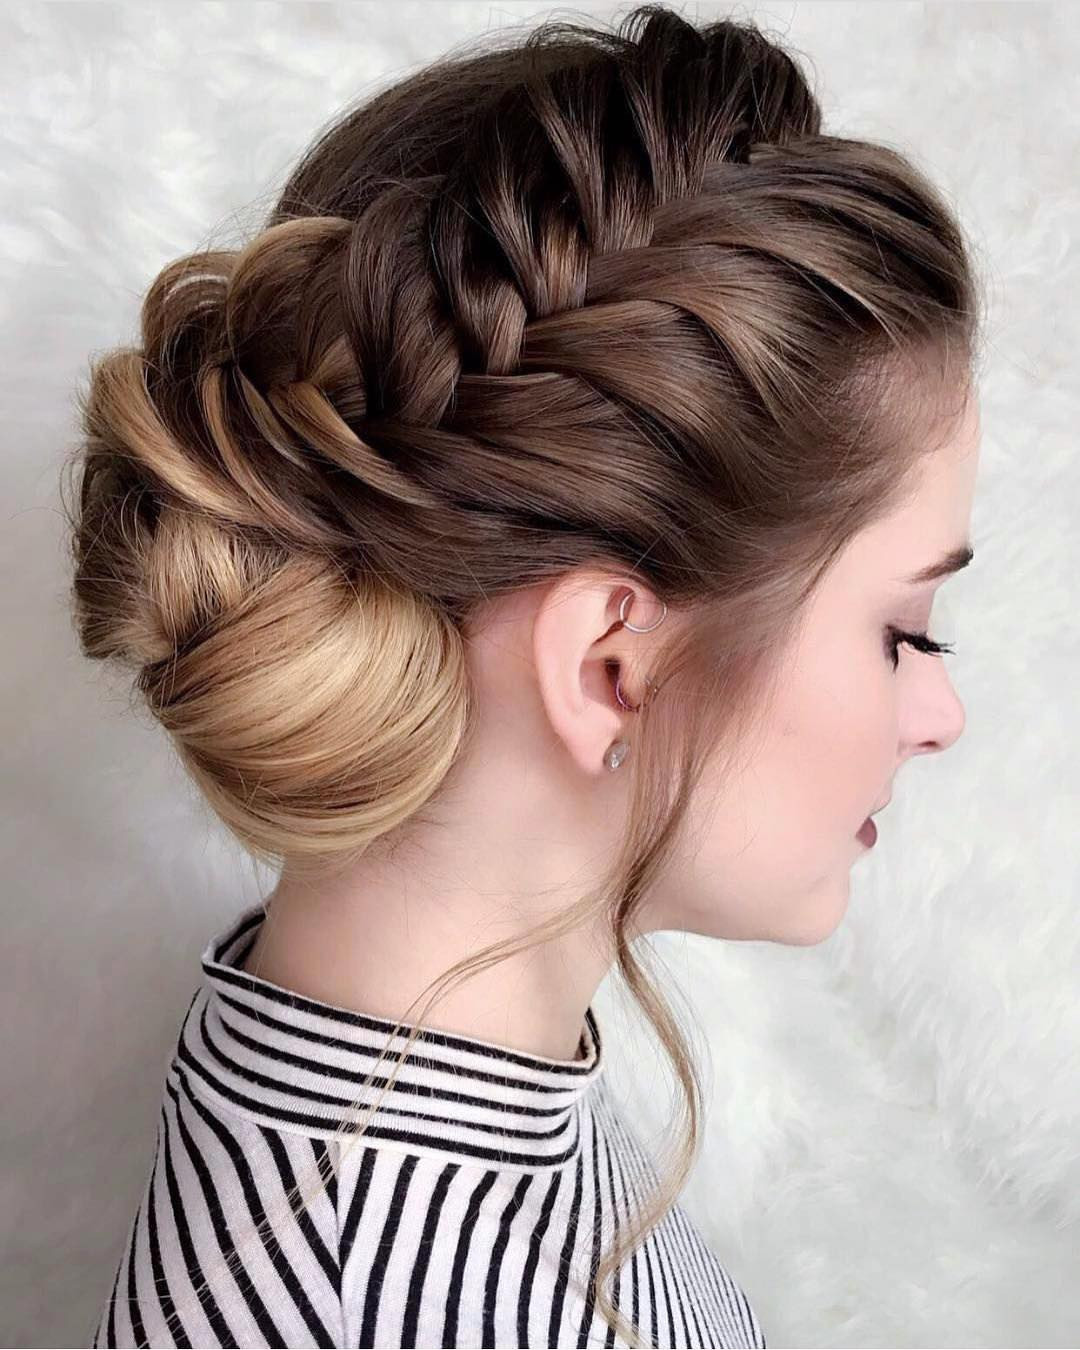 Pretty Prom Hairstyles  10 New Prom Updo Hair Styles 2019 Gorgeously Creative